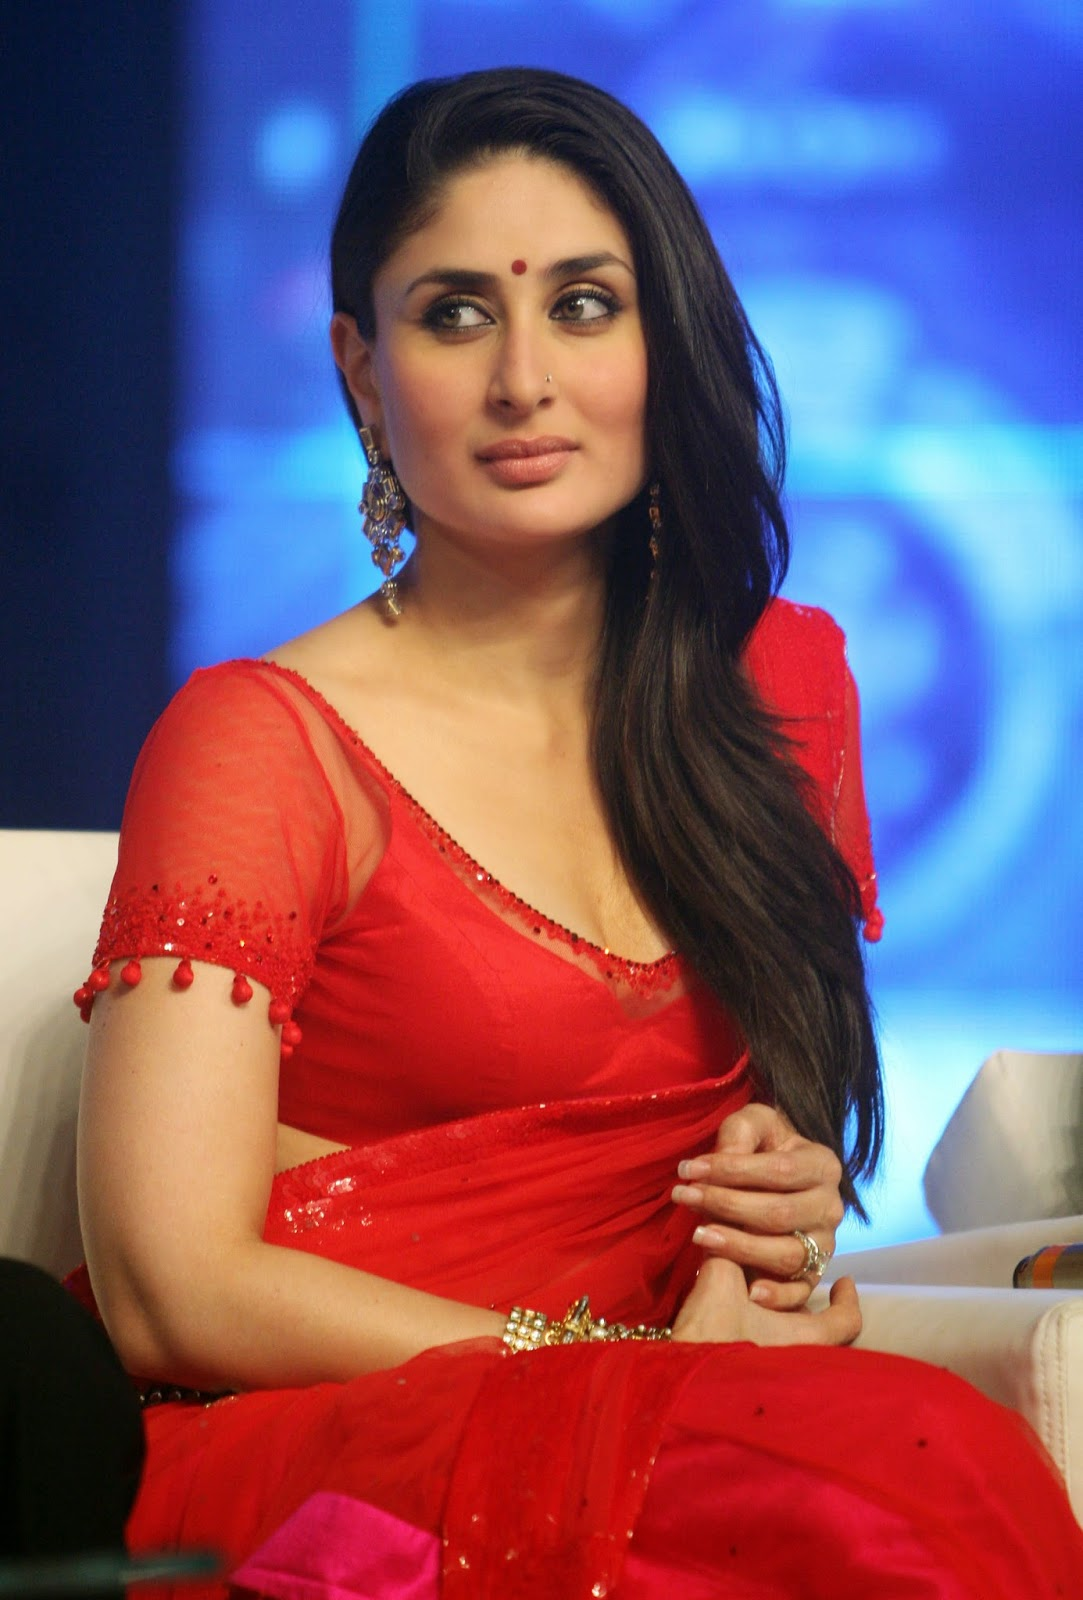 High Quality Bollywood Celebrity Pictures Kareena Kapoor -6515